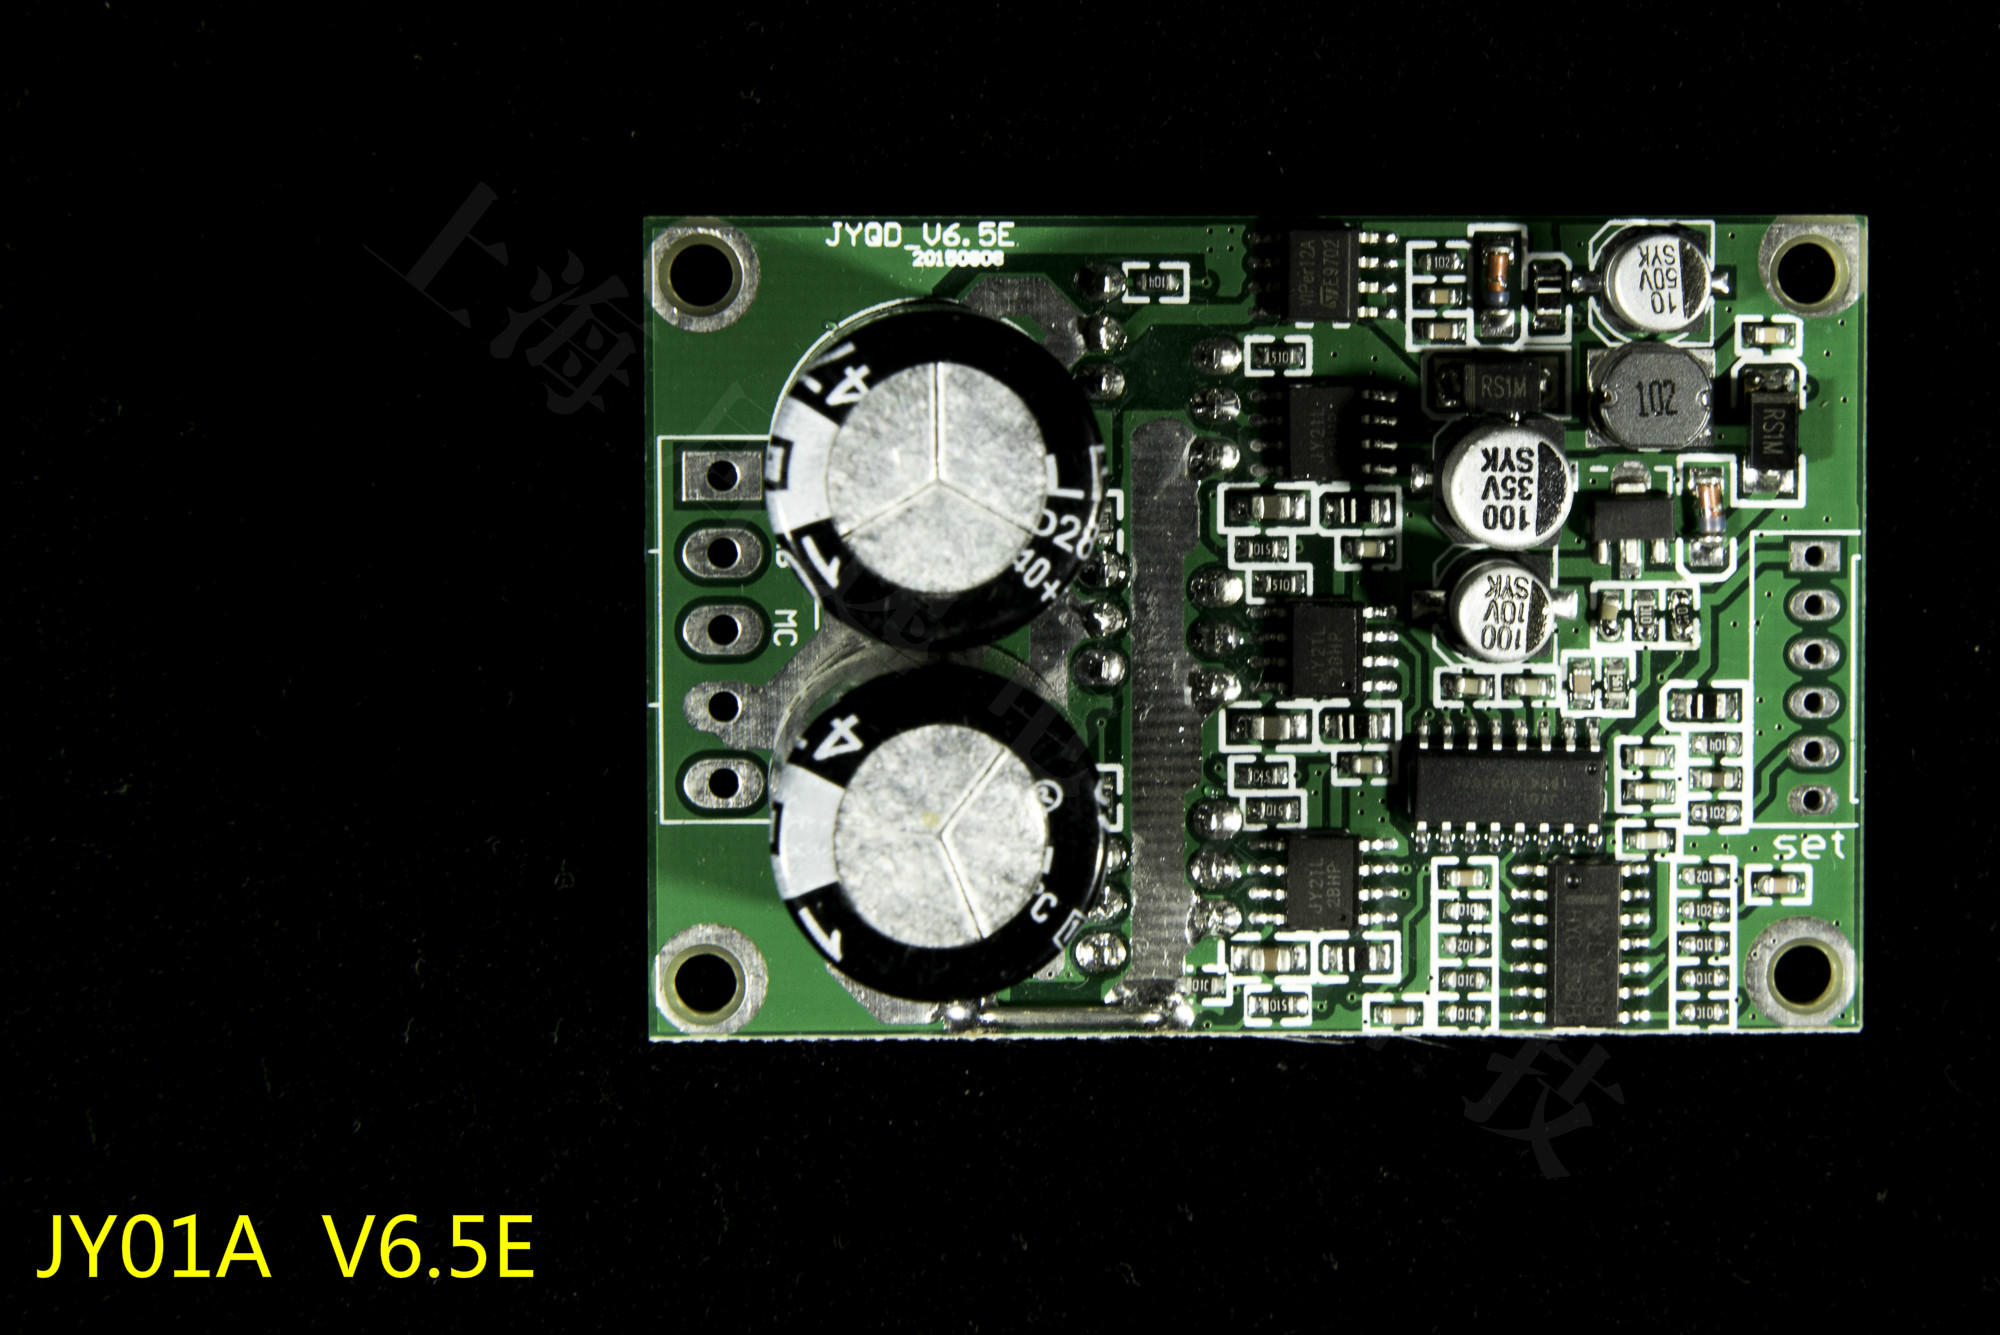 36v-72V High Voltage 15A High Power 6.5E DC Brushless Motor Drive Controller Without Hall Motor